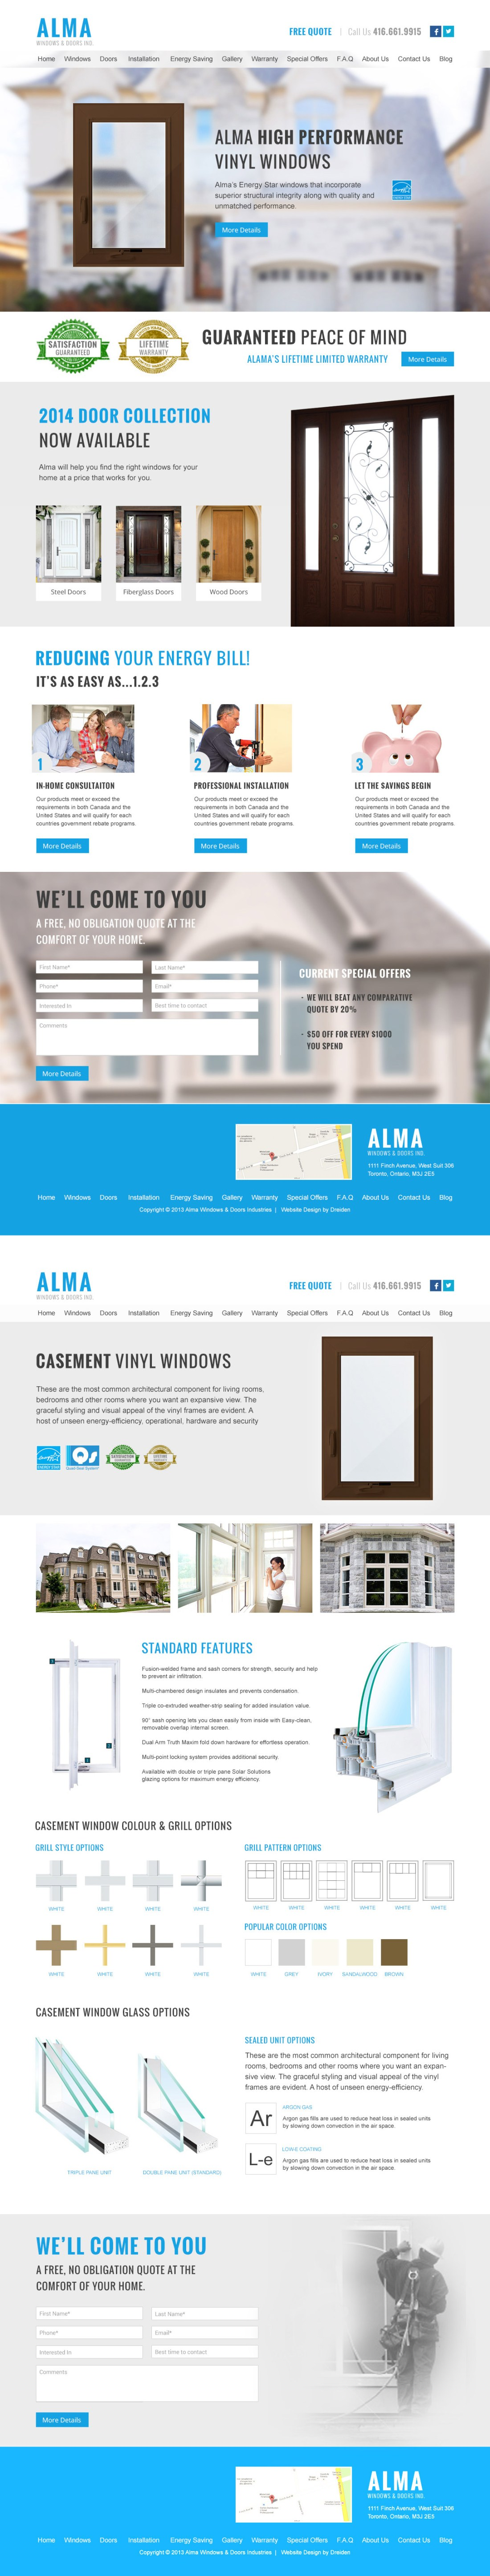 alma-windows-website-02